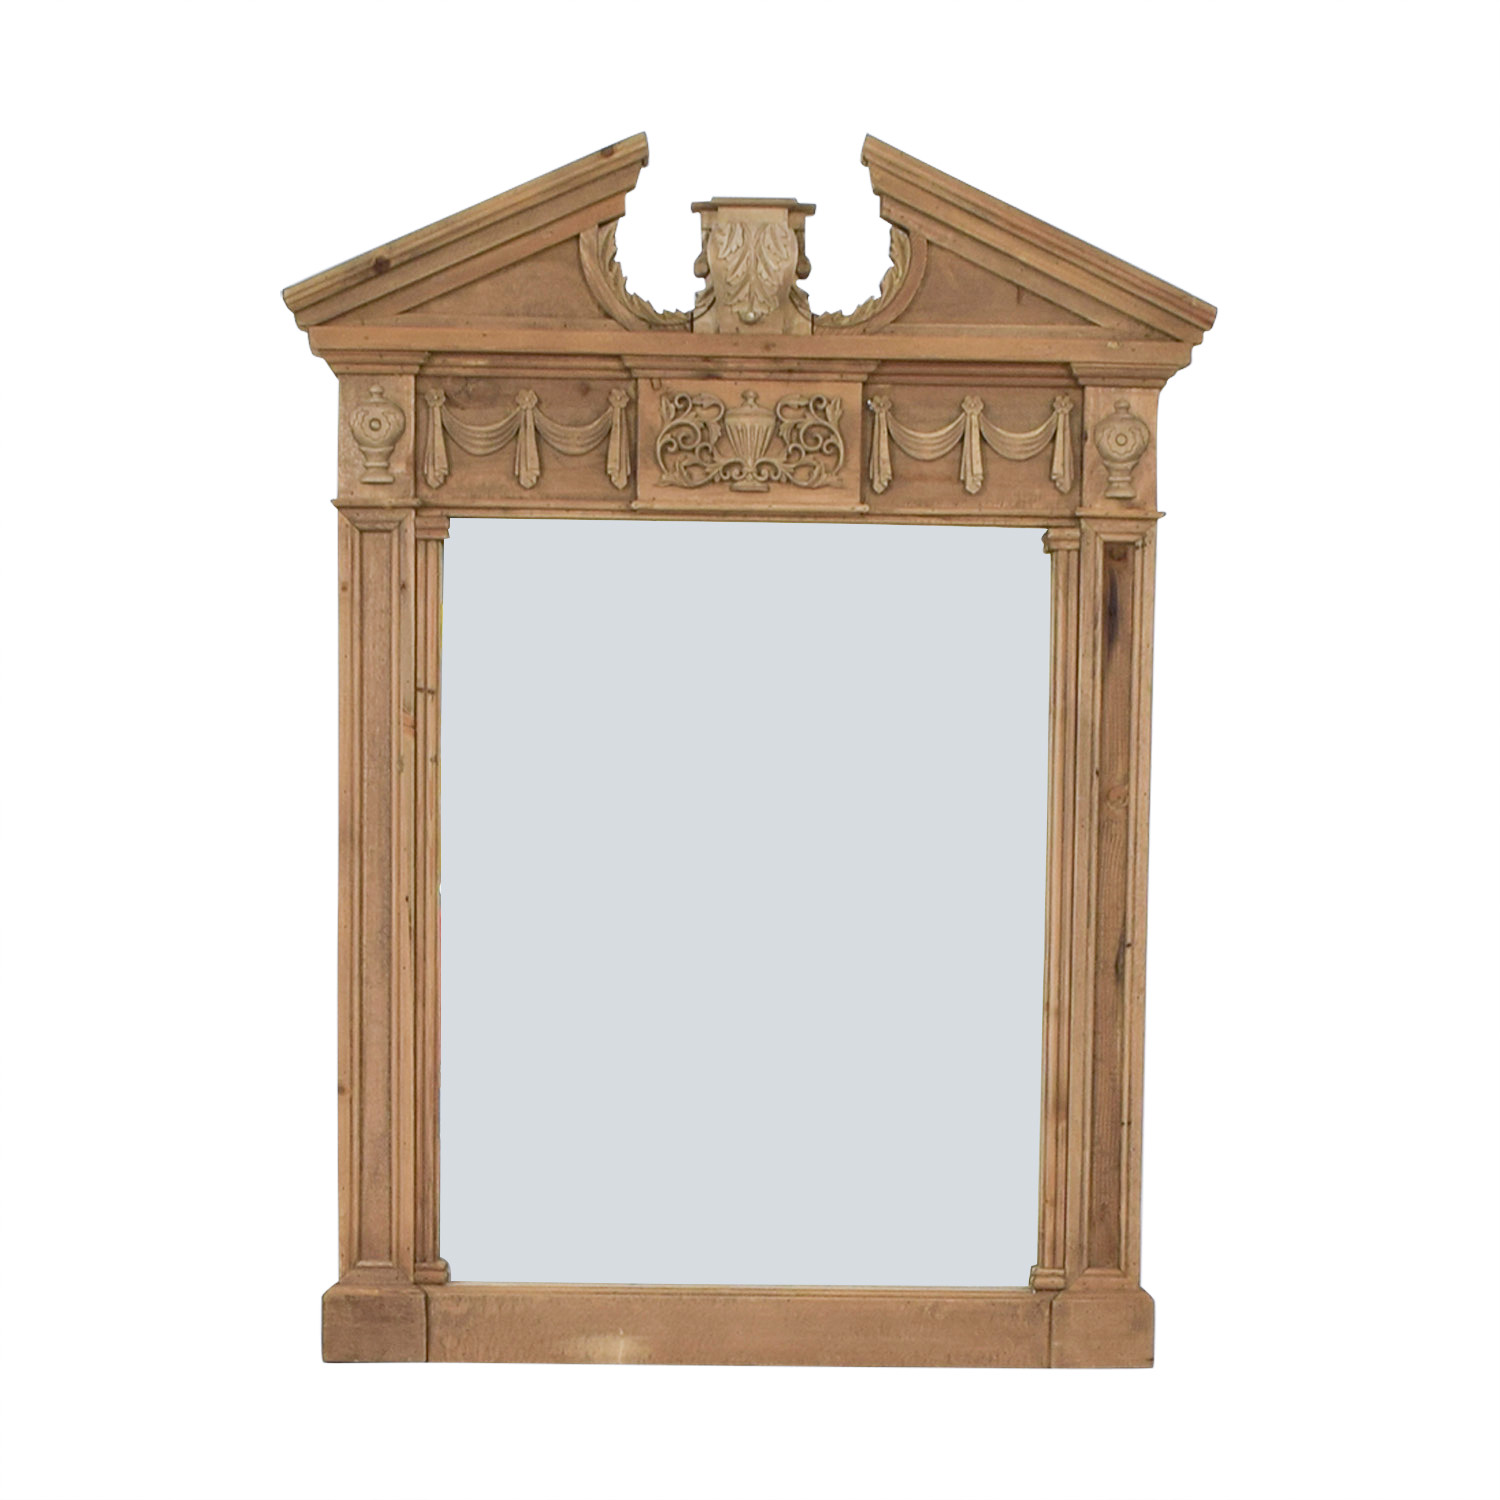 Restoration Hardware Restoration Hardware Decorative Mirror discount